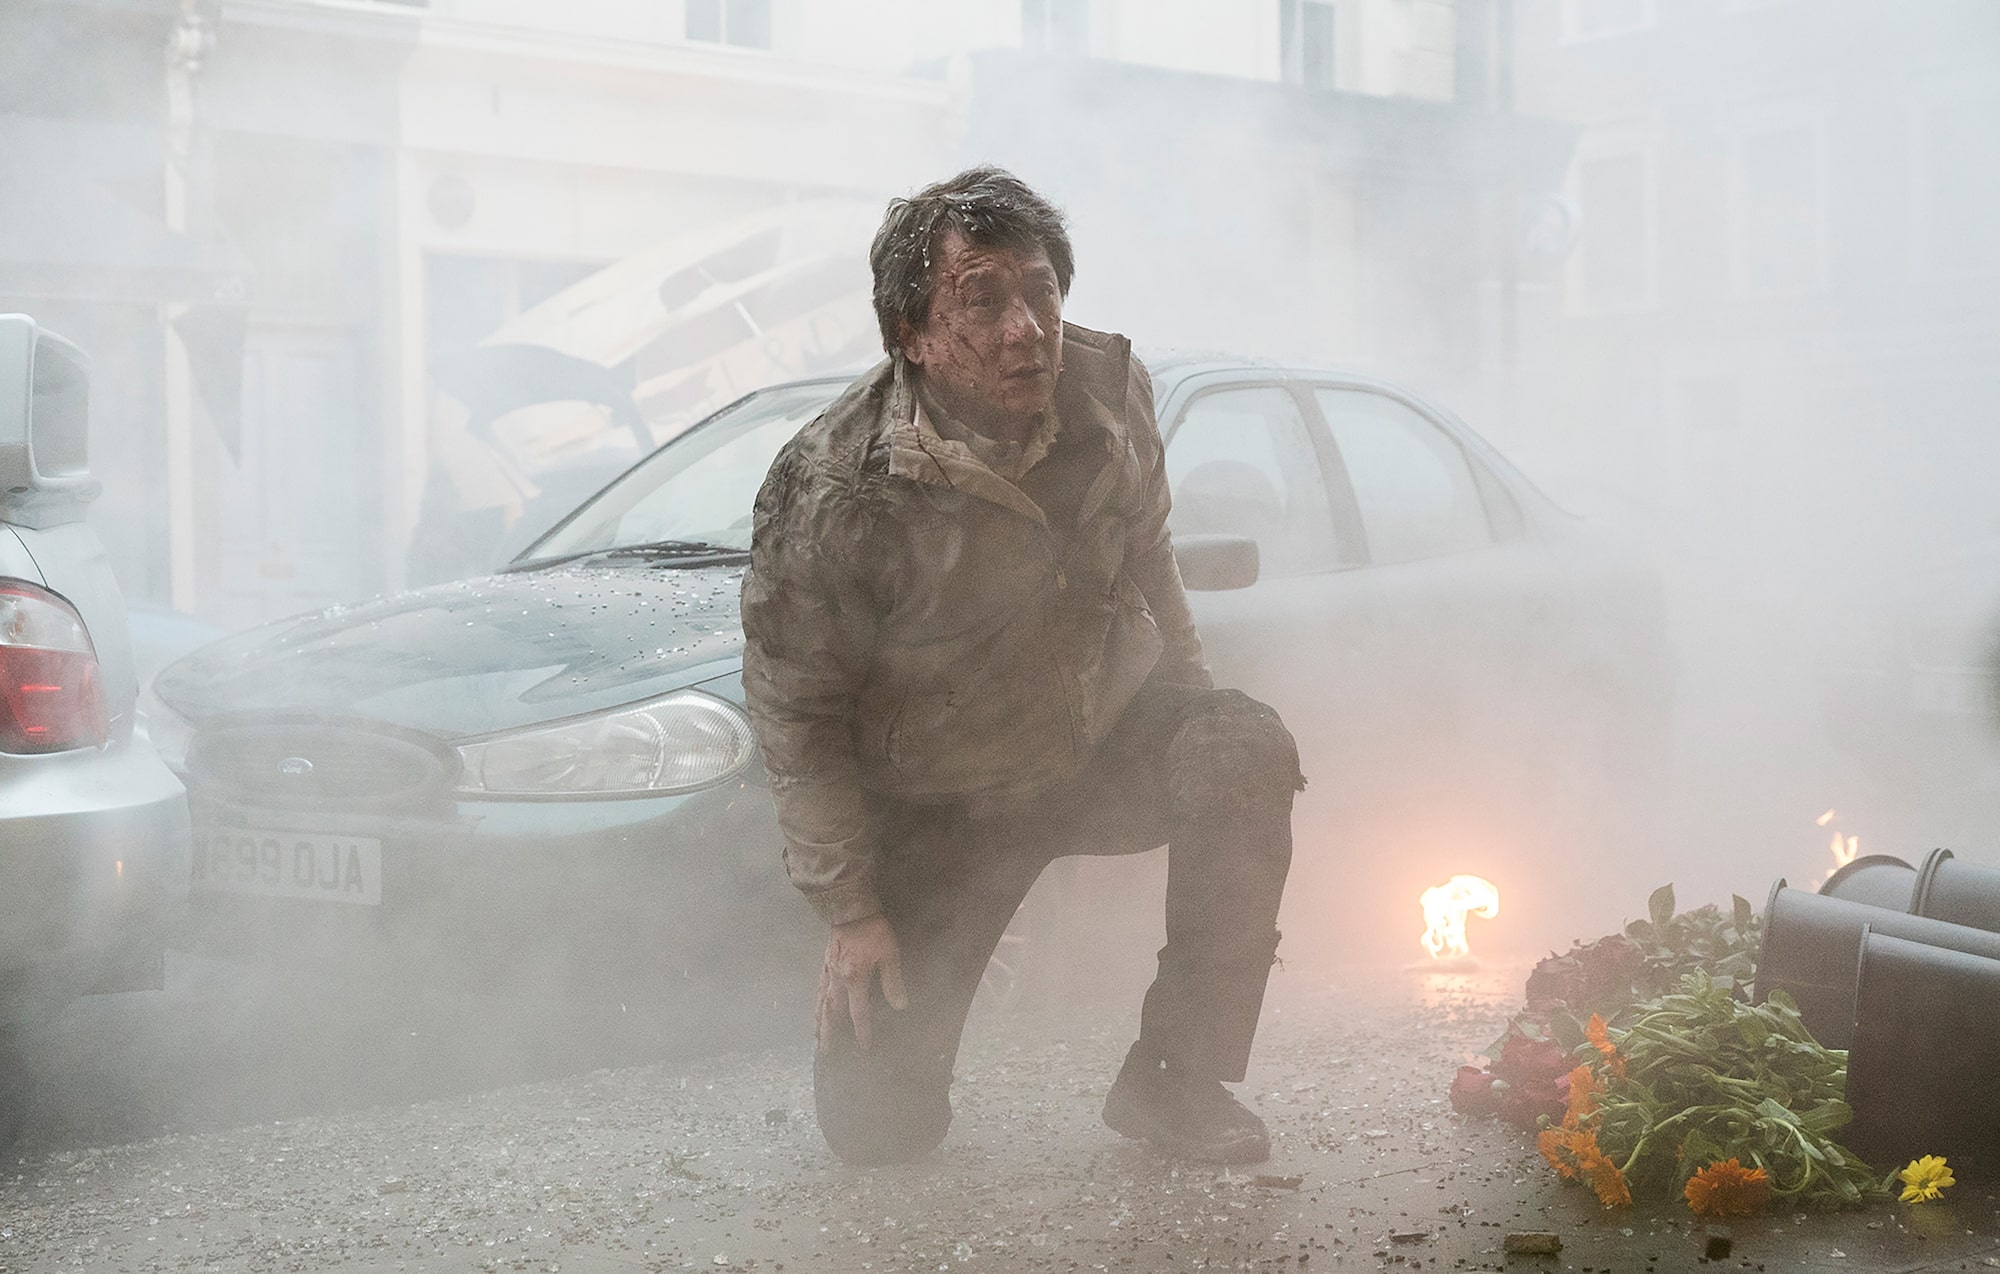 chris-raphael-sony-alpha-7SII-jackie-chan-kneels-by-a-building-following-an-explosion